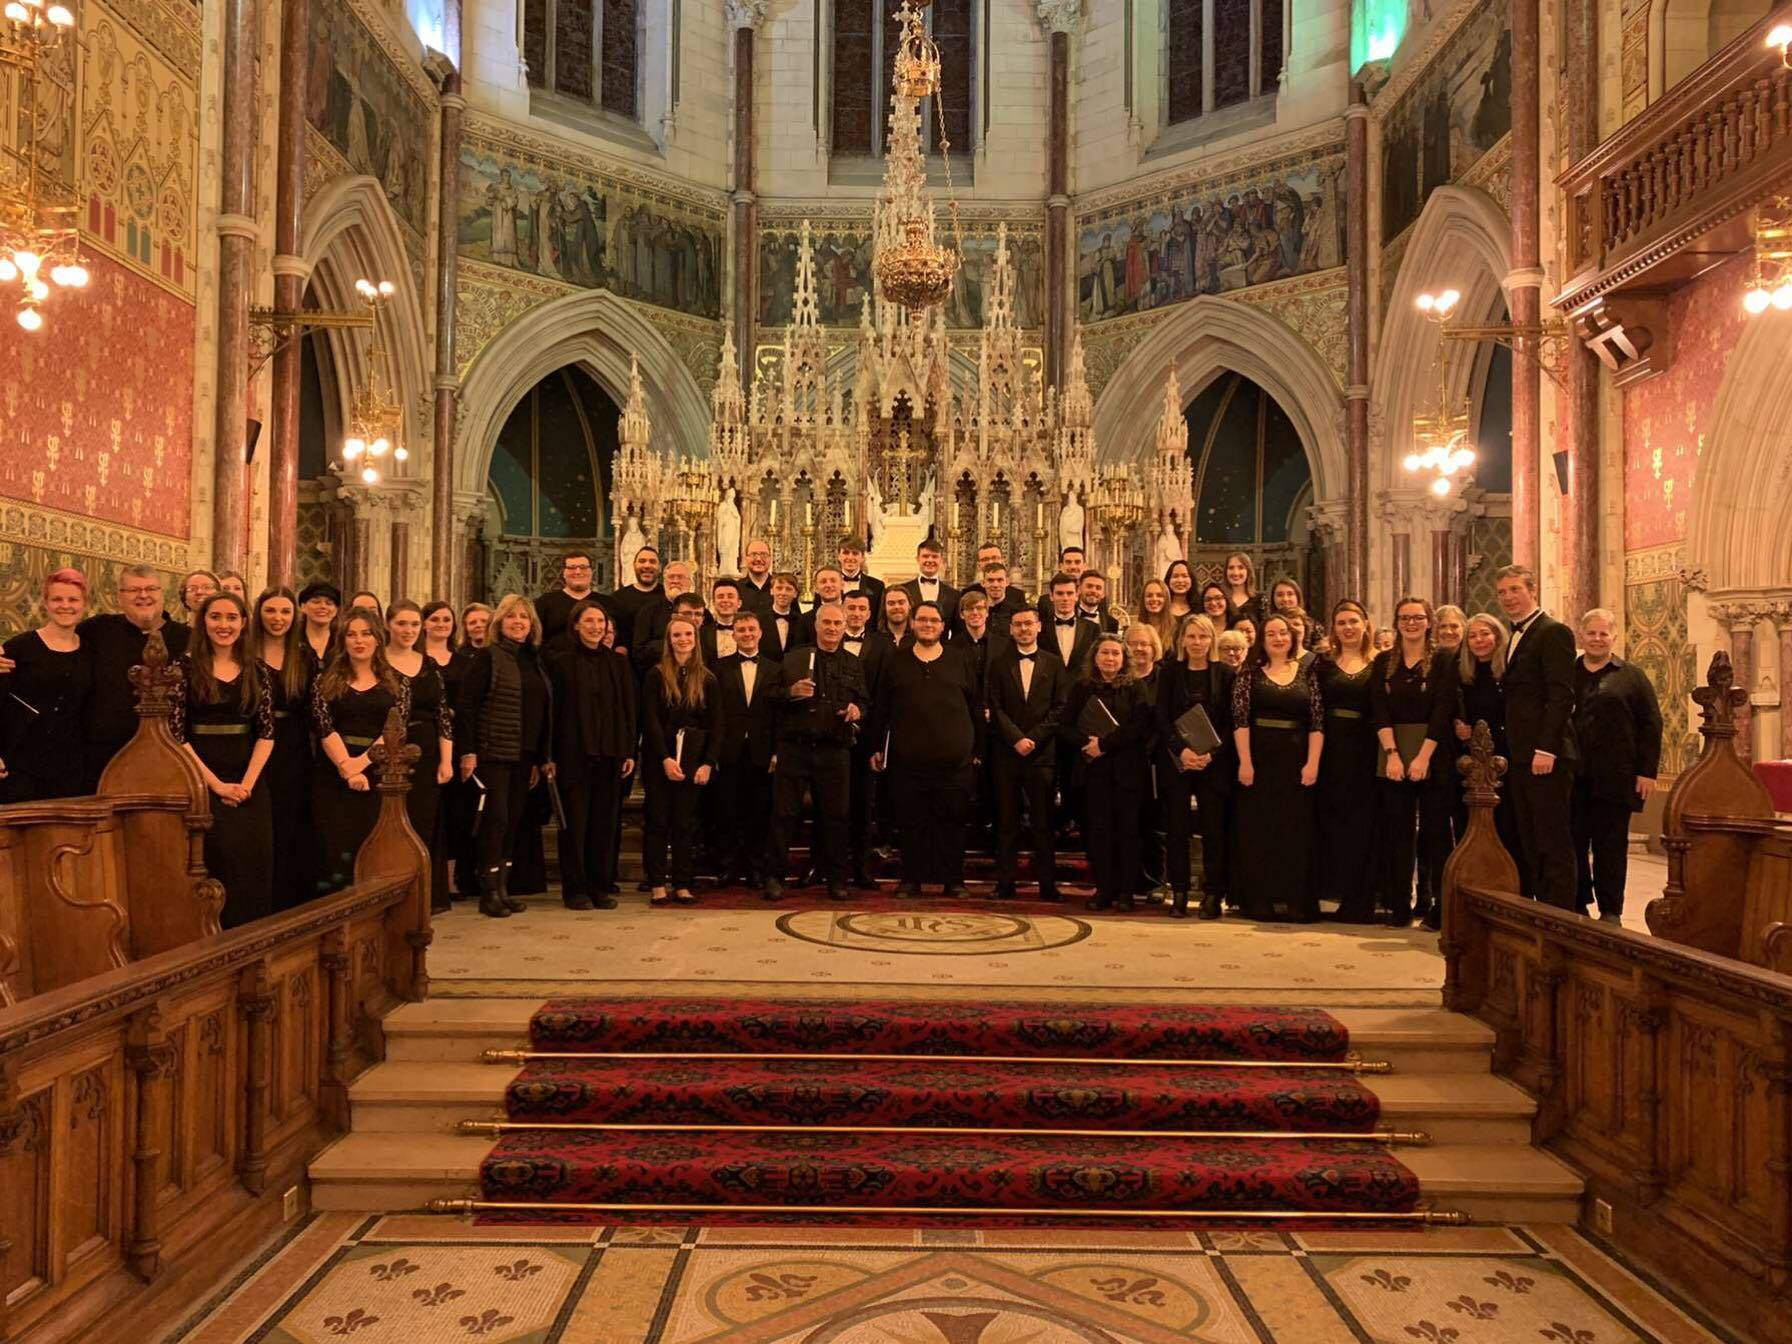 The-combined-choirs-of-Maynooth-Universty-Chamber-Choir-and-the-Bellarmine-University-Oratorio-Society.jpg#asset:9313